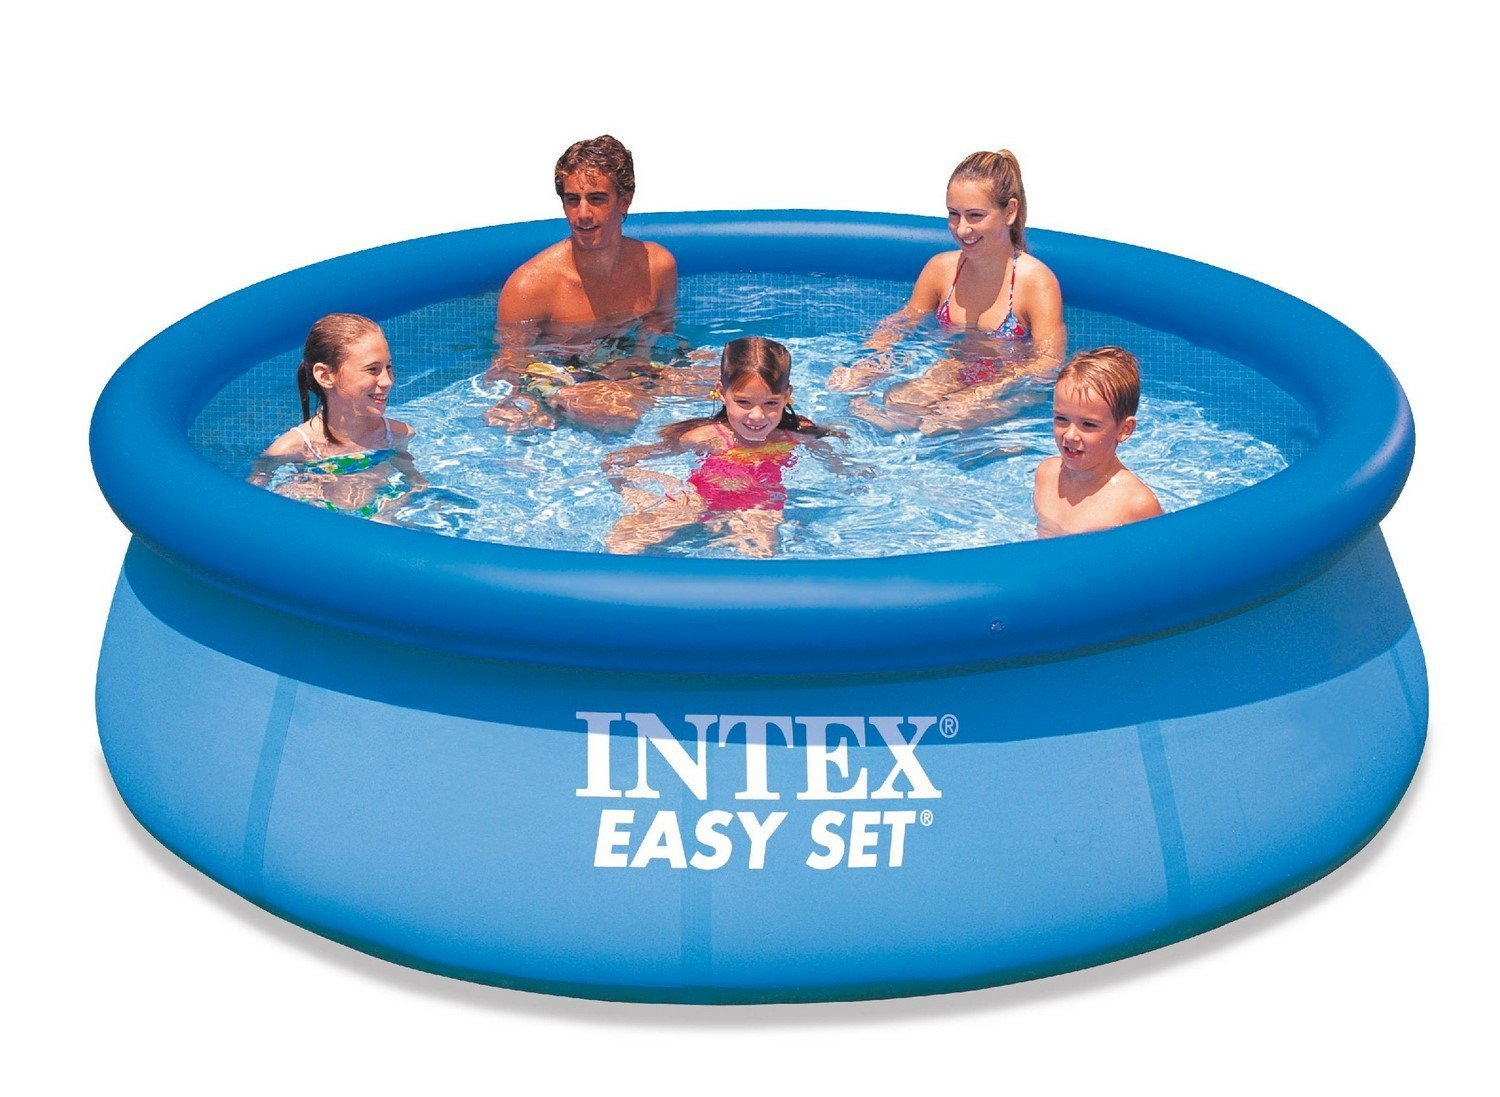 28120 intex 10 ft easy set pool 10 39 x 30 Intex swim center family pool cover